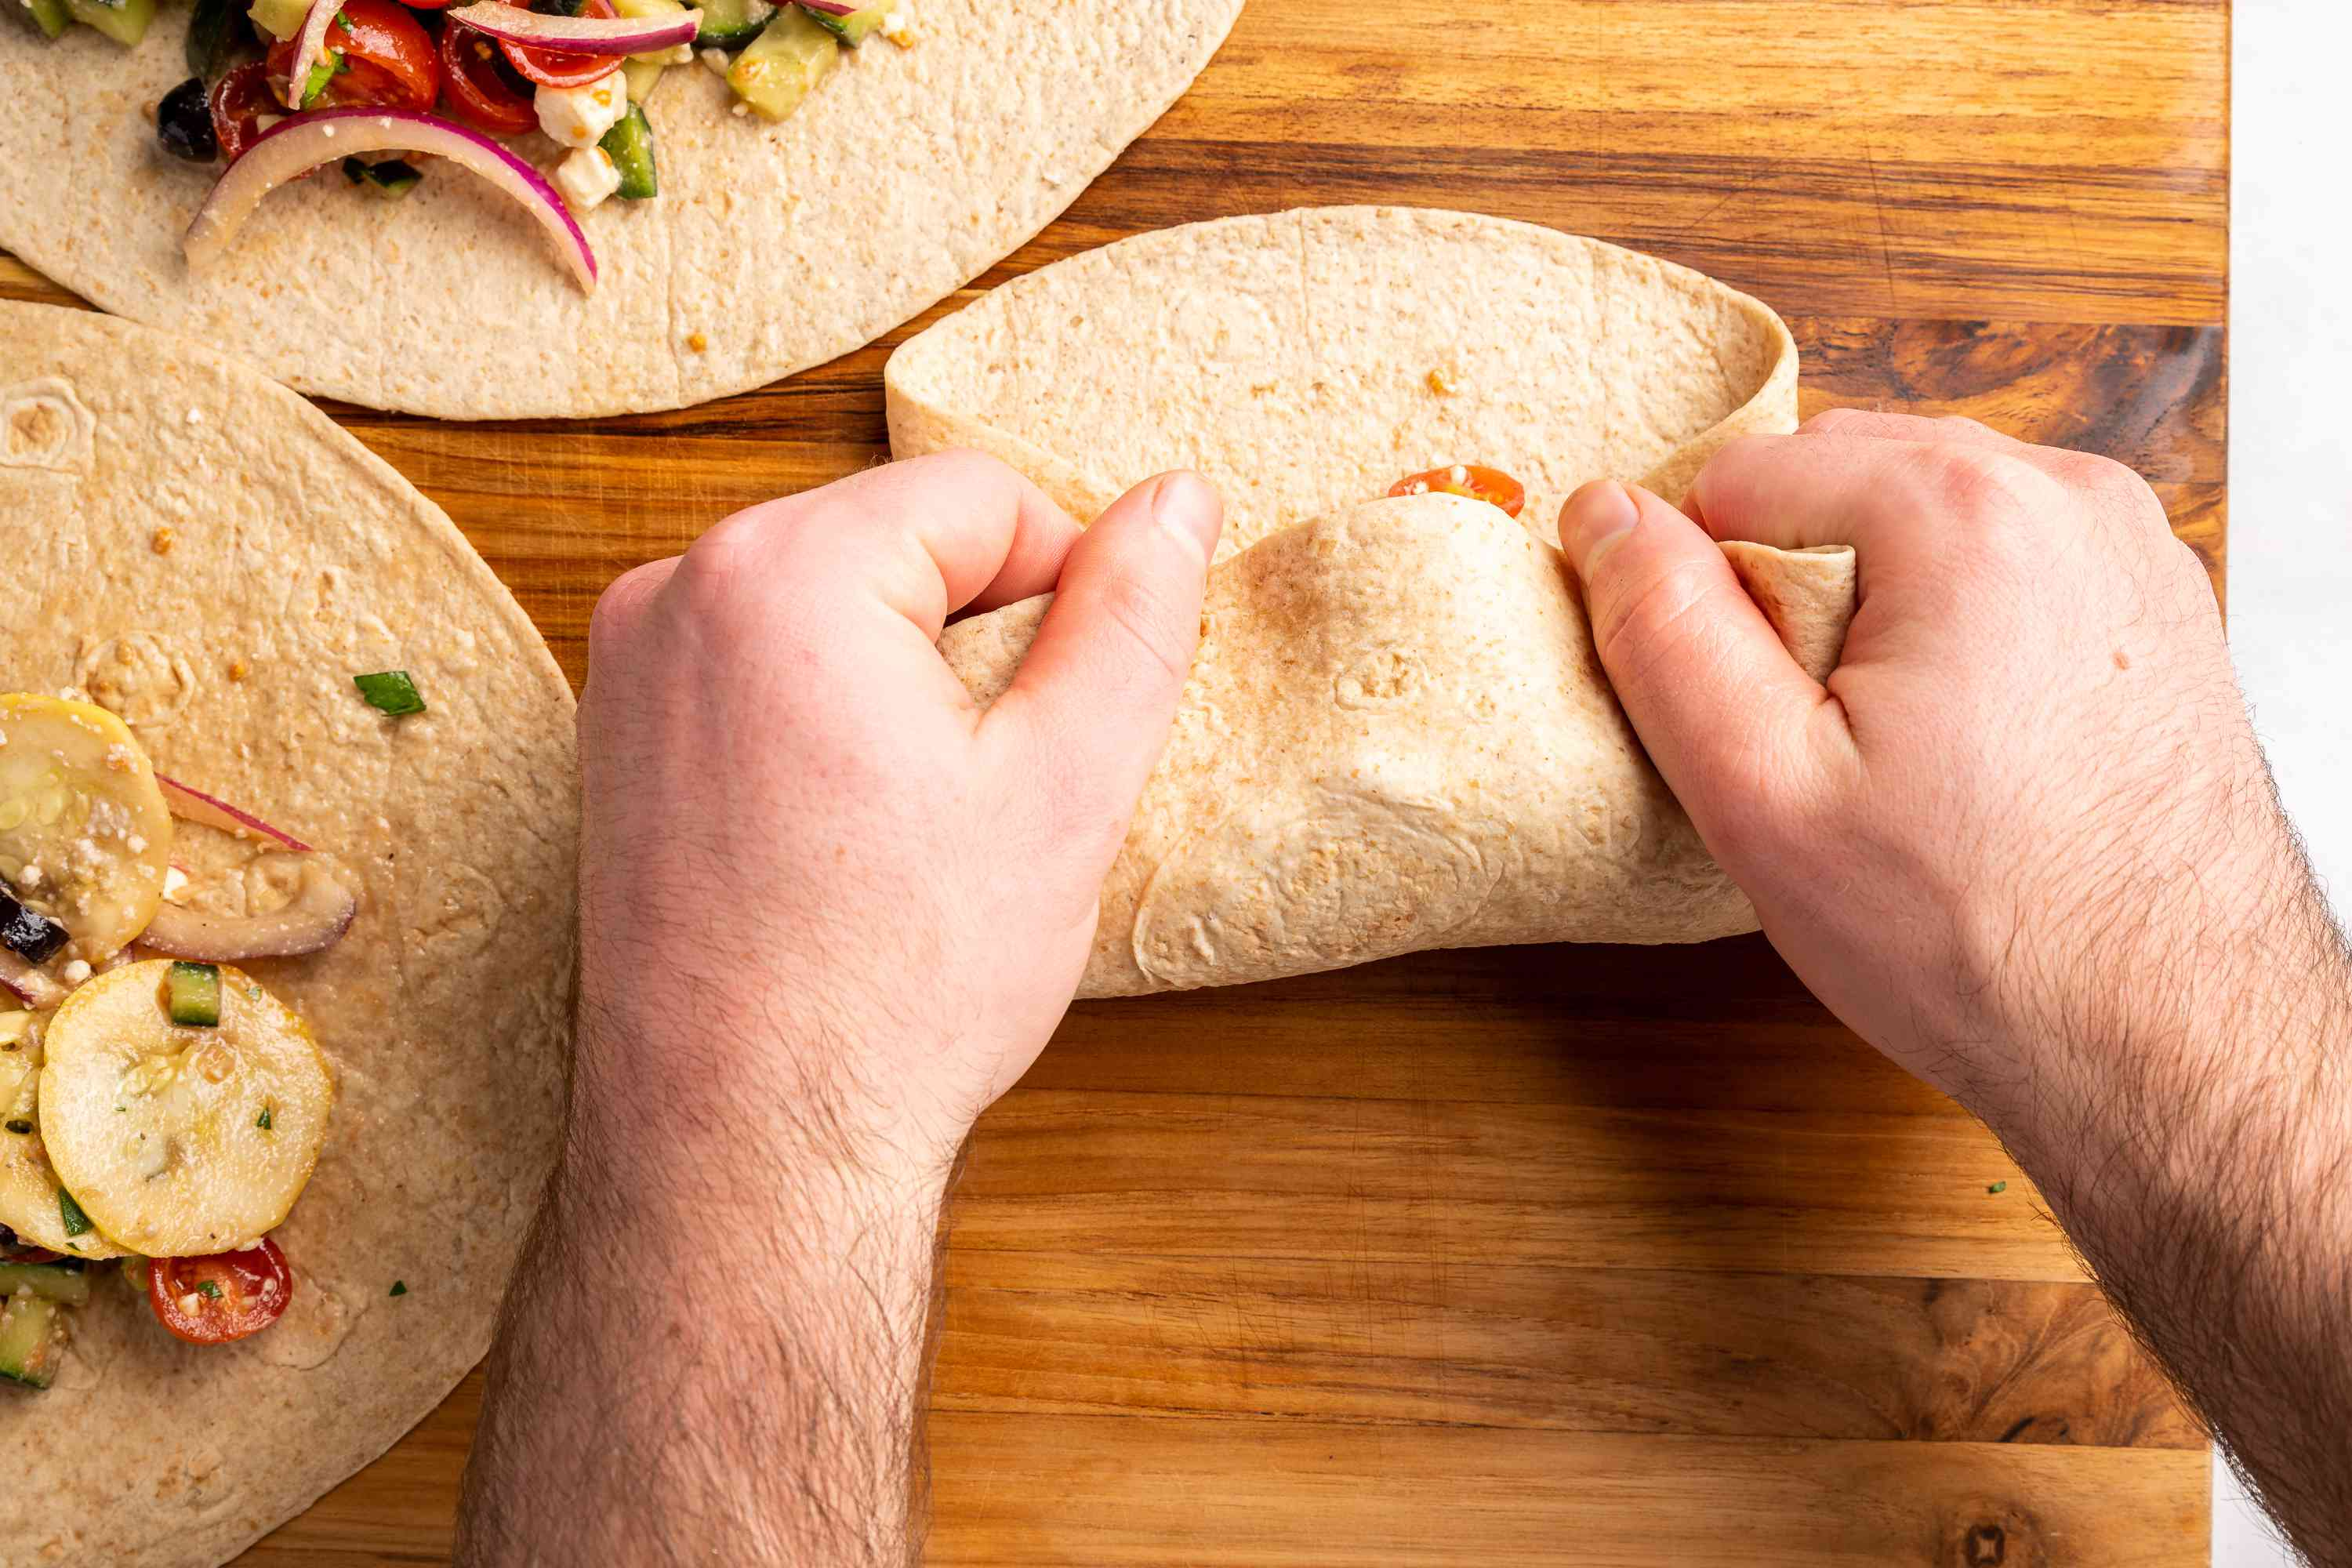 Hands rolling up tortilla into wrap shape